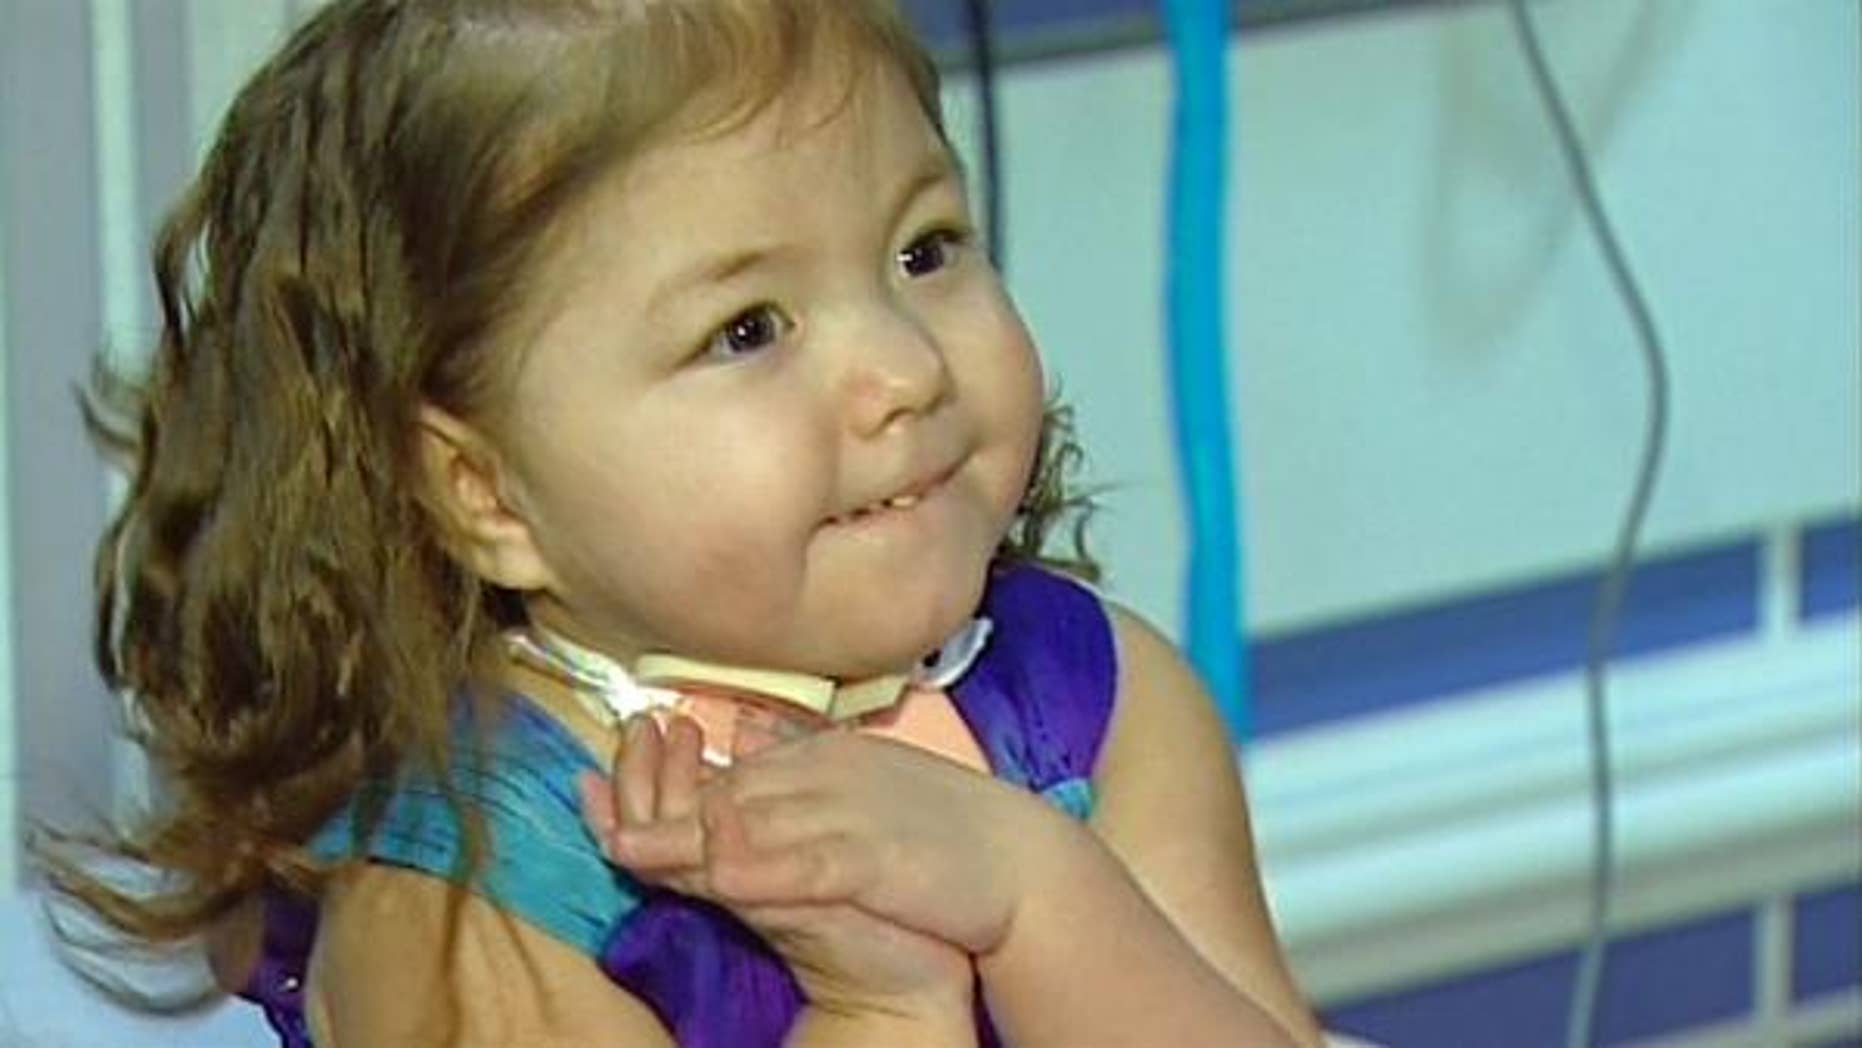 Adalynn Willett left Cook Children's Medical Center in Fort Worth after spending the first 850 days of her life in the hospital.